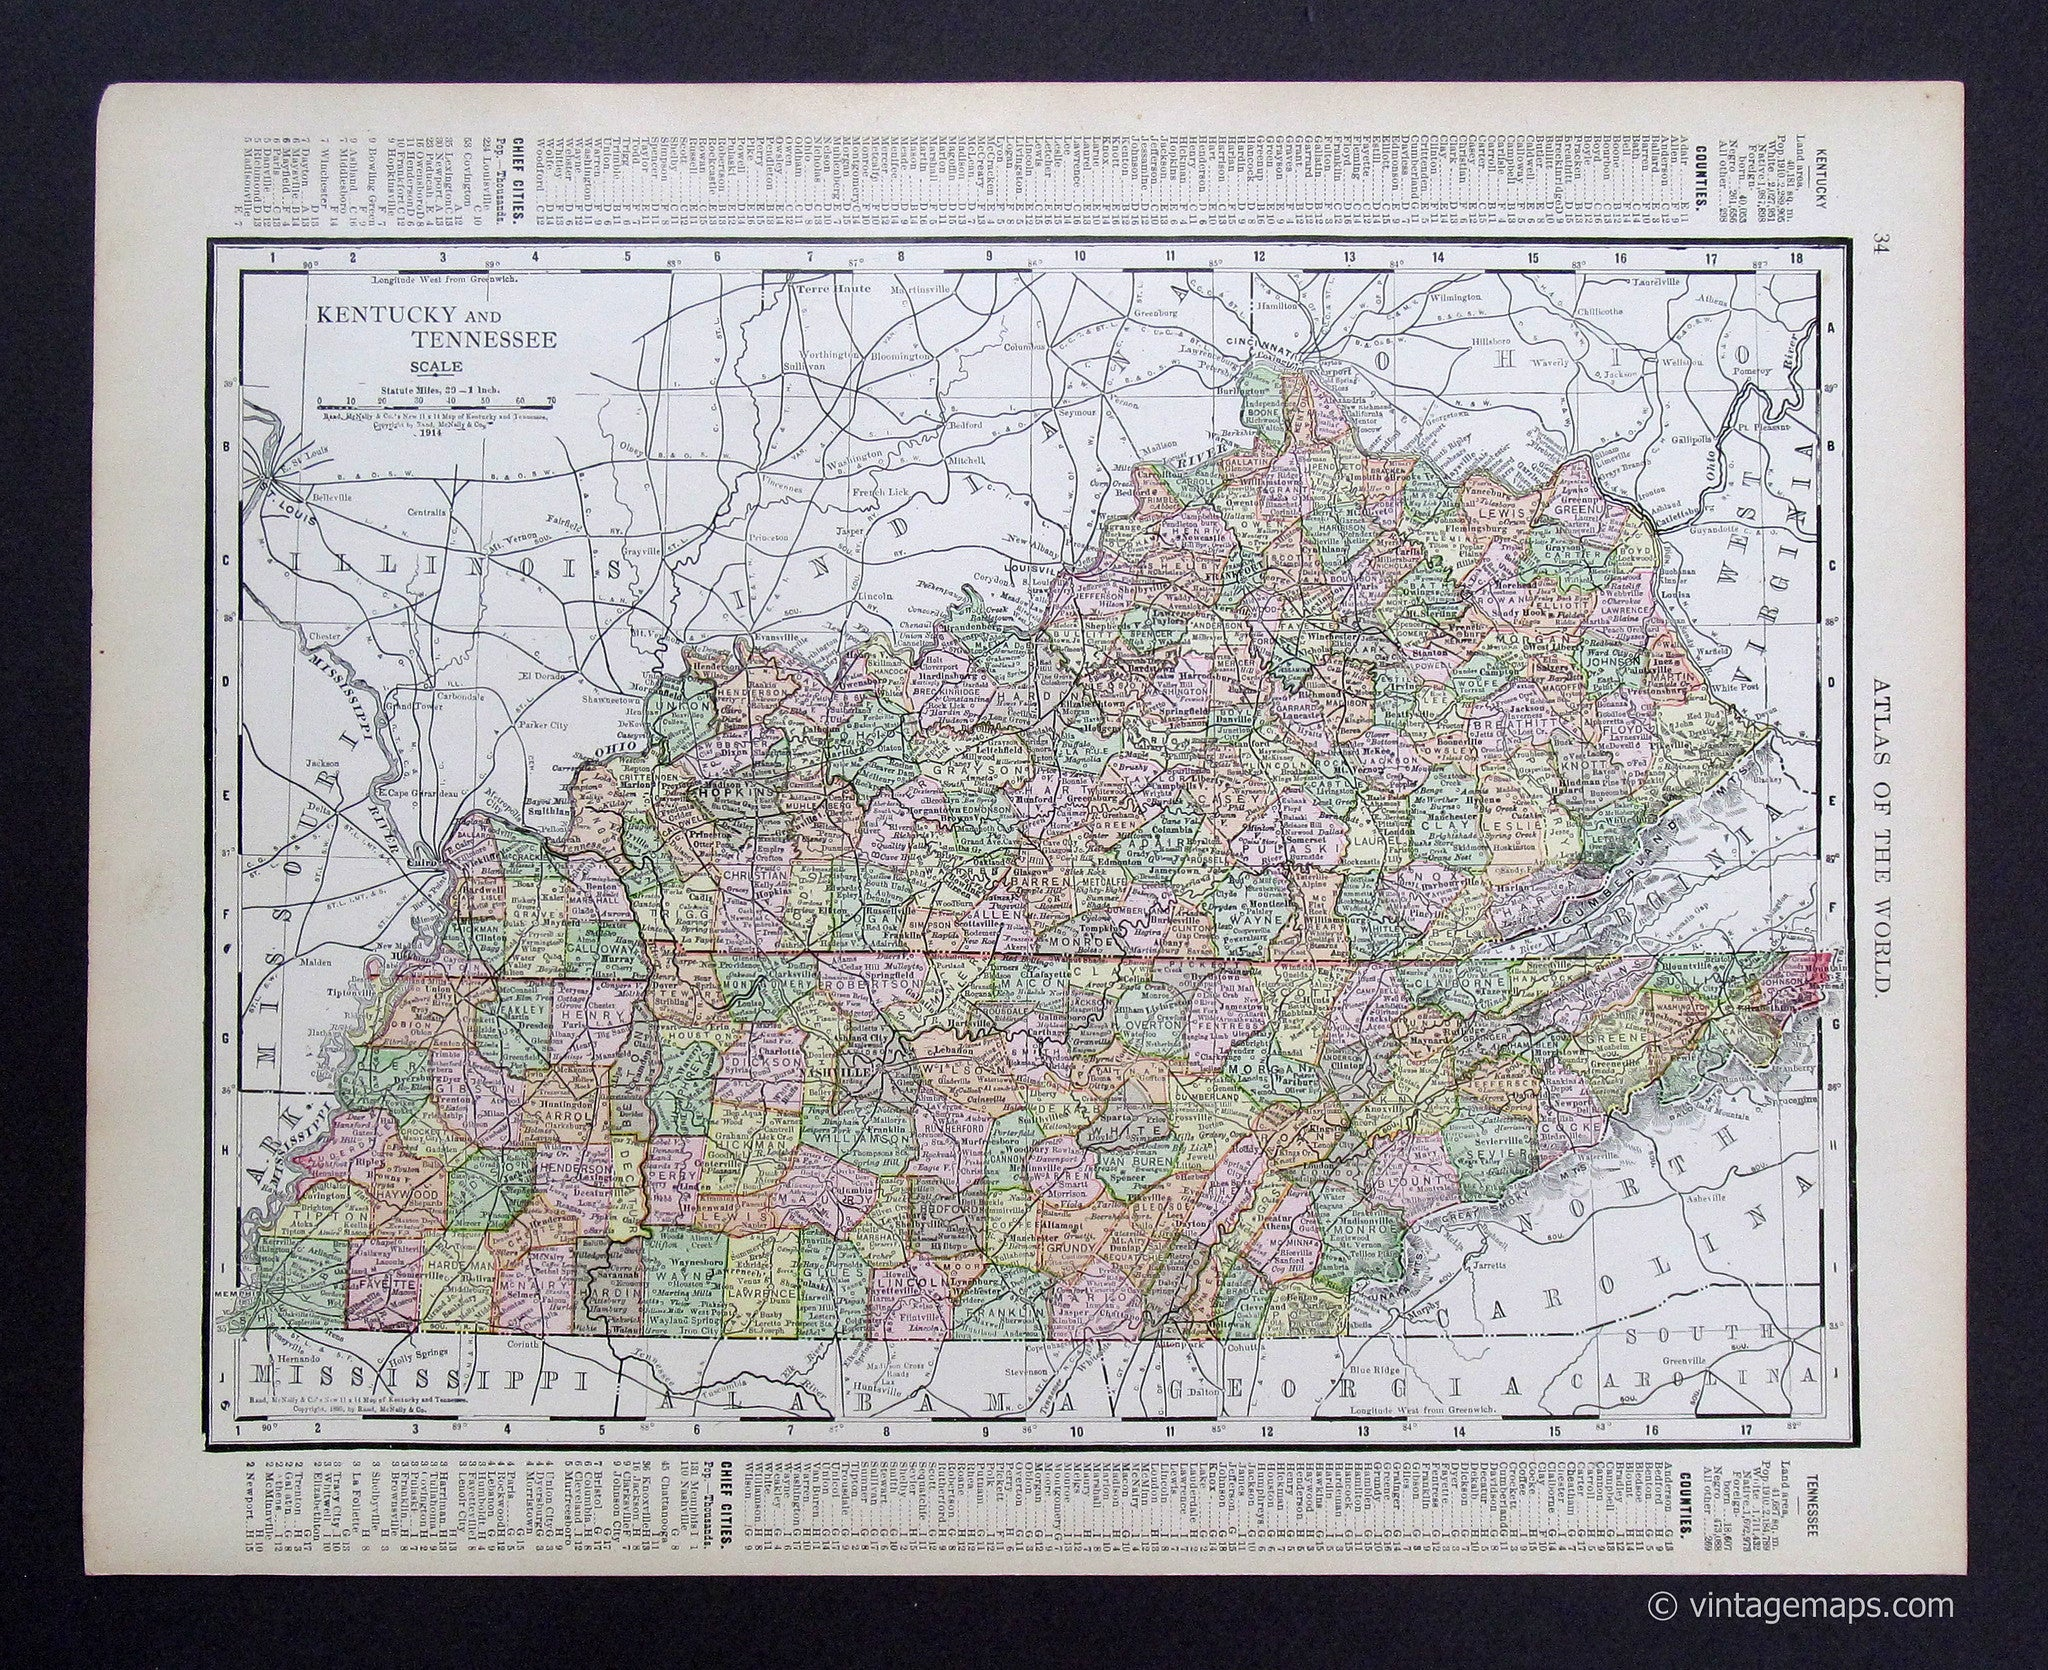 northeastern tennessee map, wears valley tennessee map, paducah tennessee map, south carolina tennessee map, london tennessee map, new mexico tennessee map, whites creek tennessee map, dallas tennessee map, portland tennessee map, tennessee county map, dyersville tennessee map, austin tennessee map, wyoming tennessee map, tennessee state map, beech grove tennessee map, bryson city tennessee map, belle meade tennessee map, somerset tennessee map, mayfield tennessee map, marion tennessee map, on kentucky tennessee map